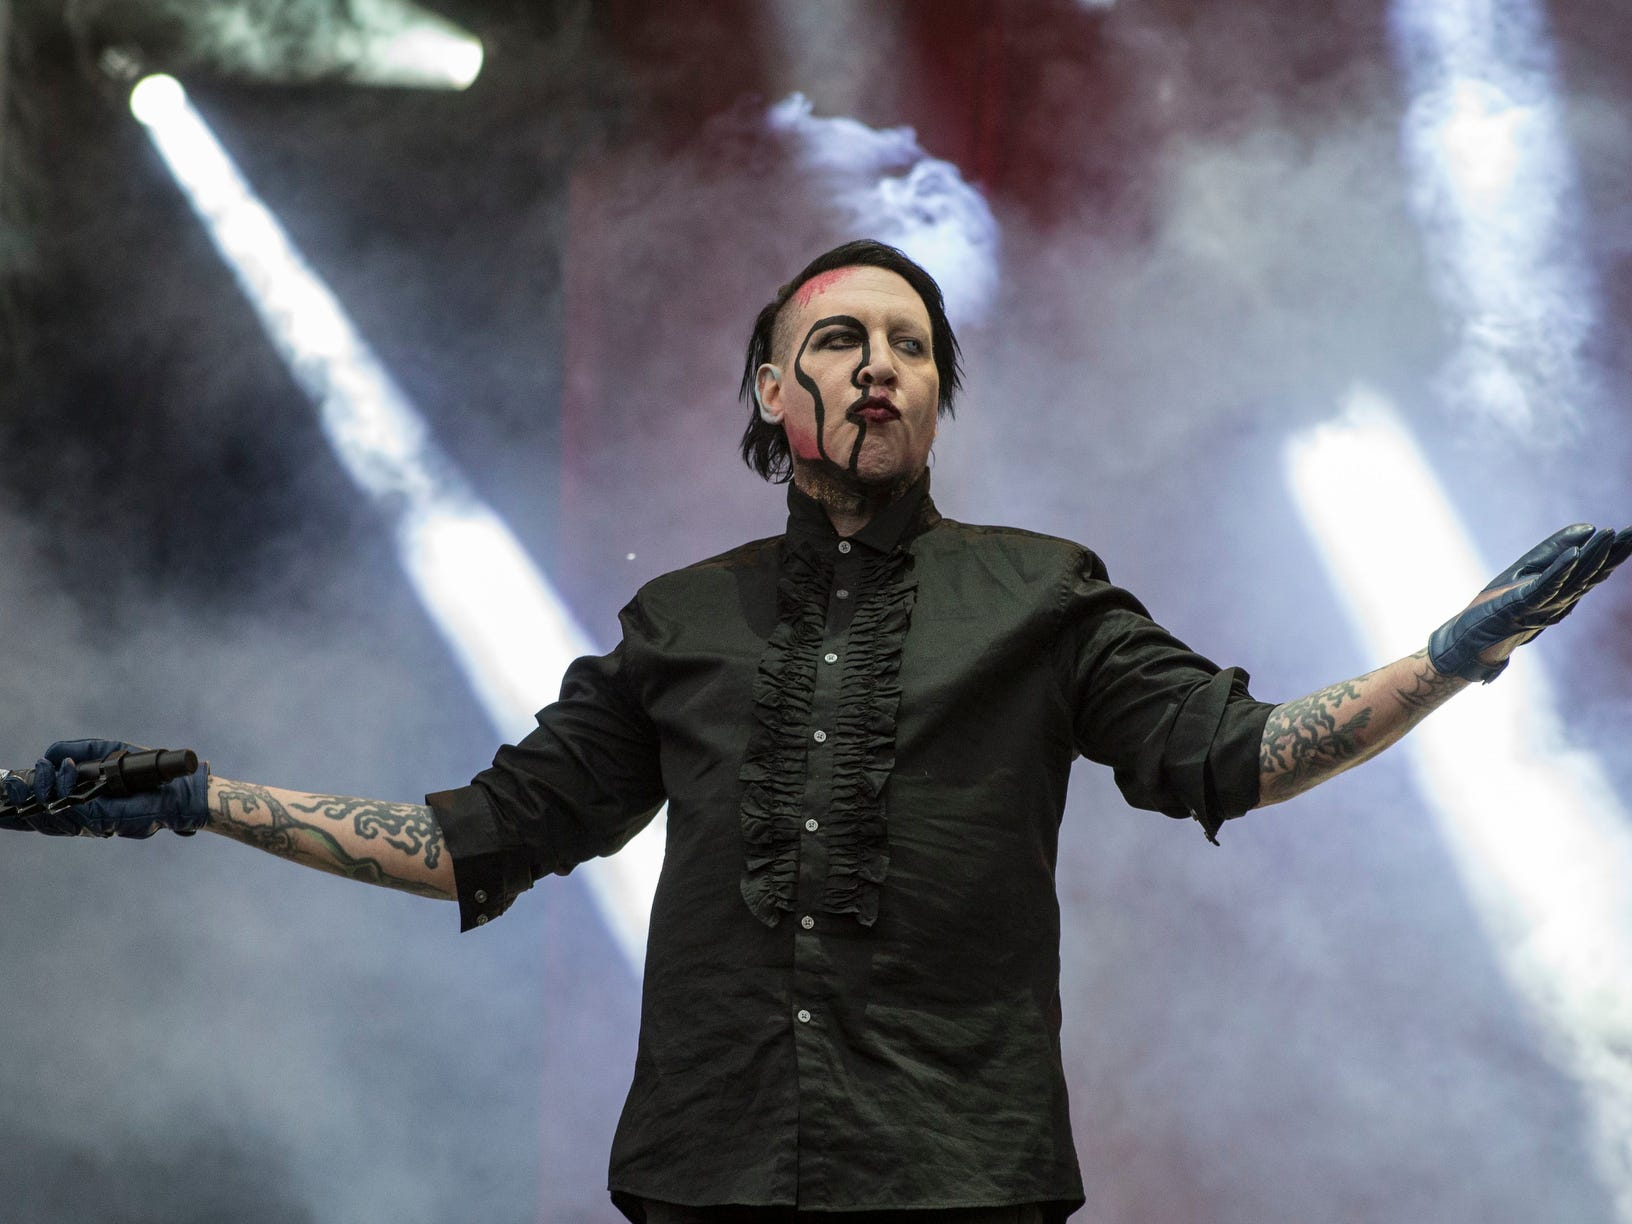 OCT. 22